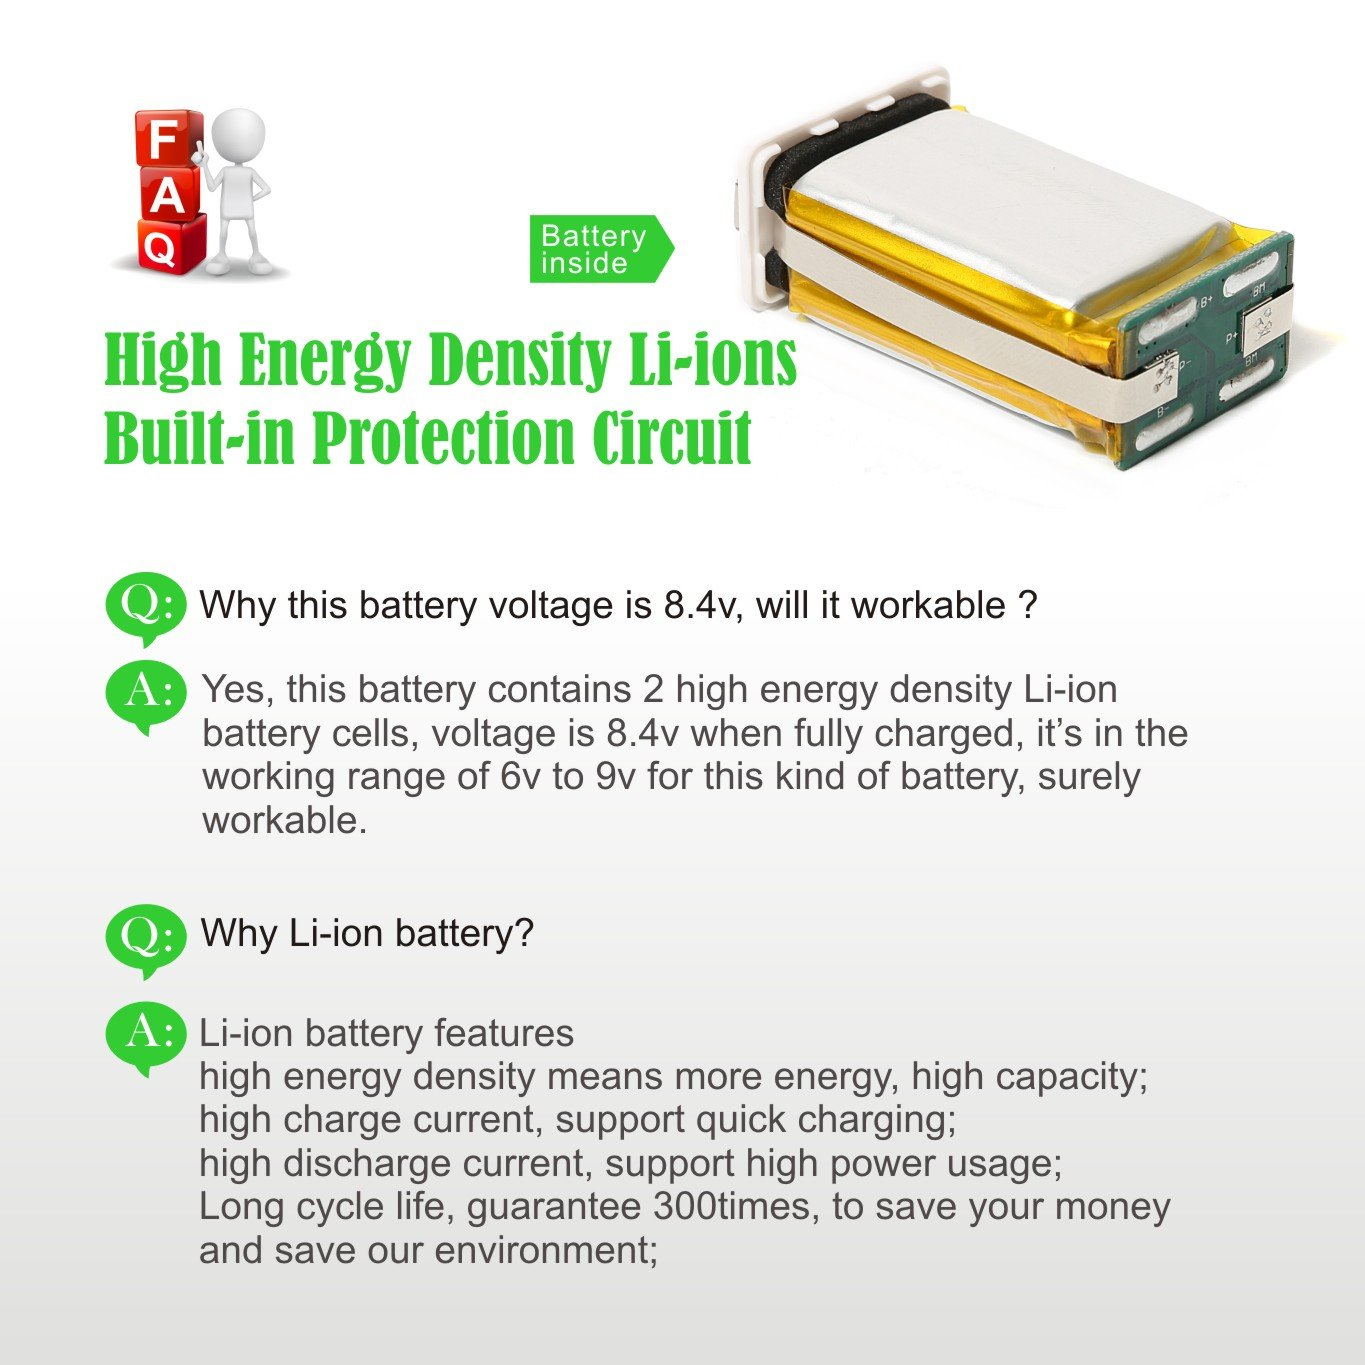 9v Batteries Rechargeable Li Ion 800mah 4 Packs Home Lithium Battery Fast Charging Circuit Batterycharger Powersupply Audio Theater